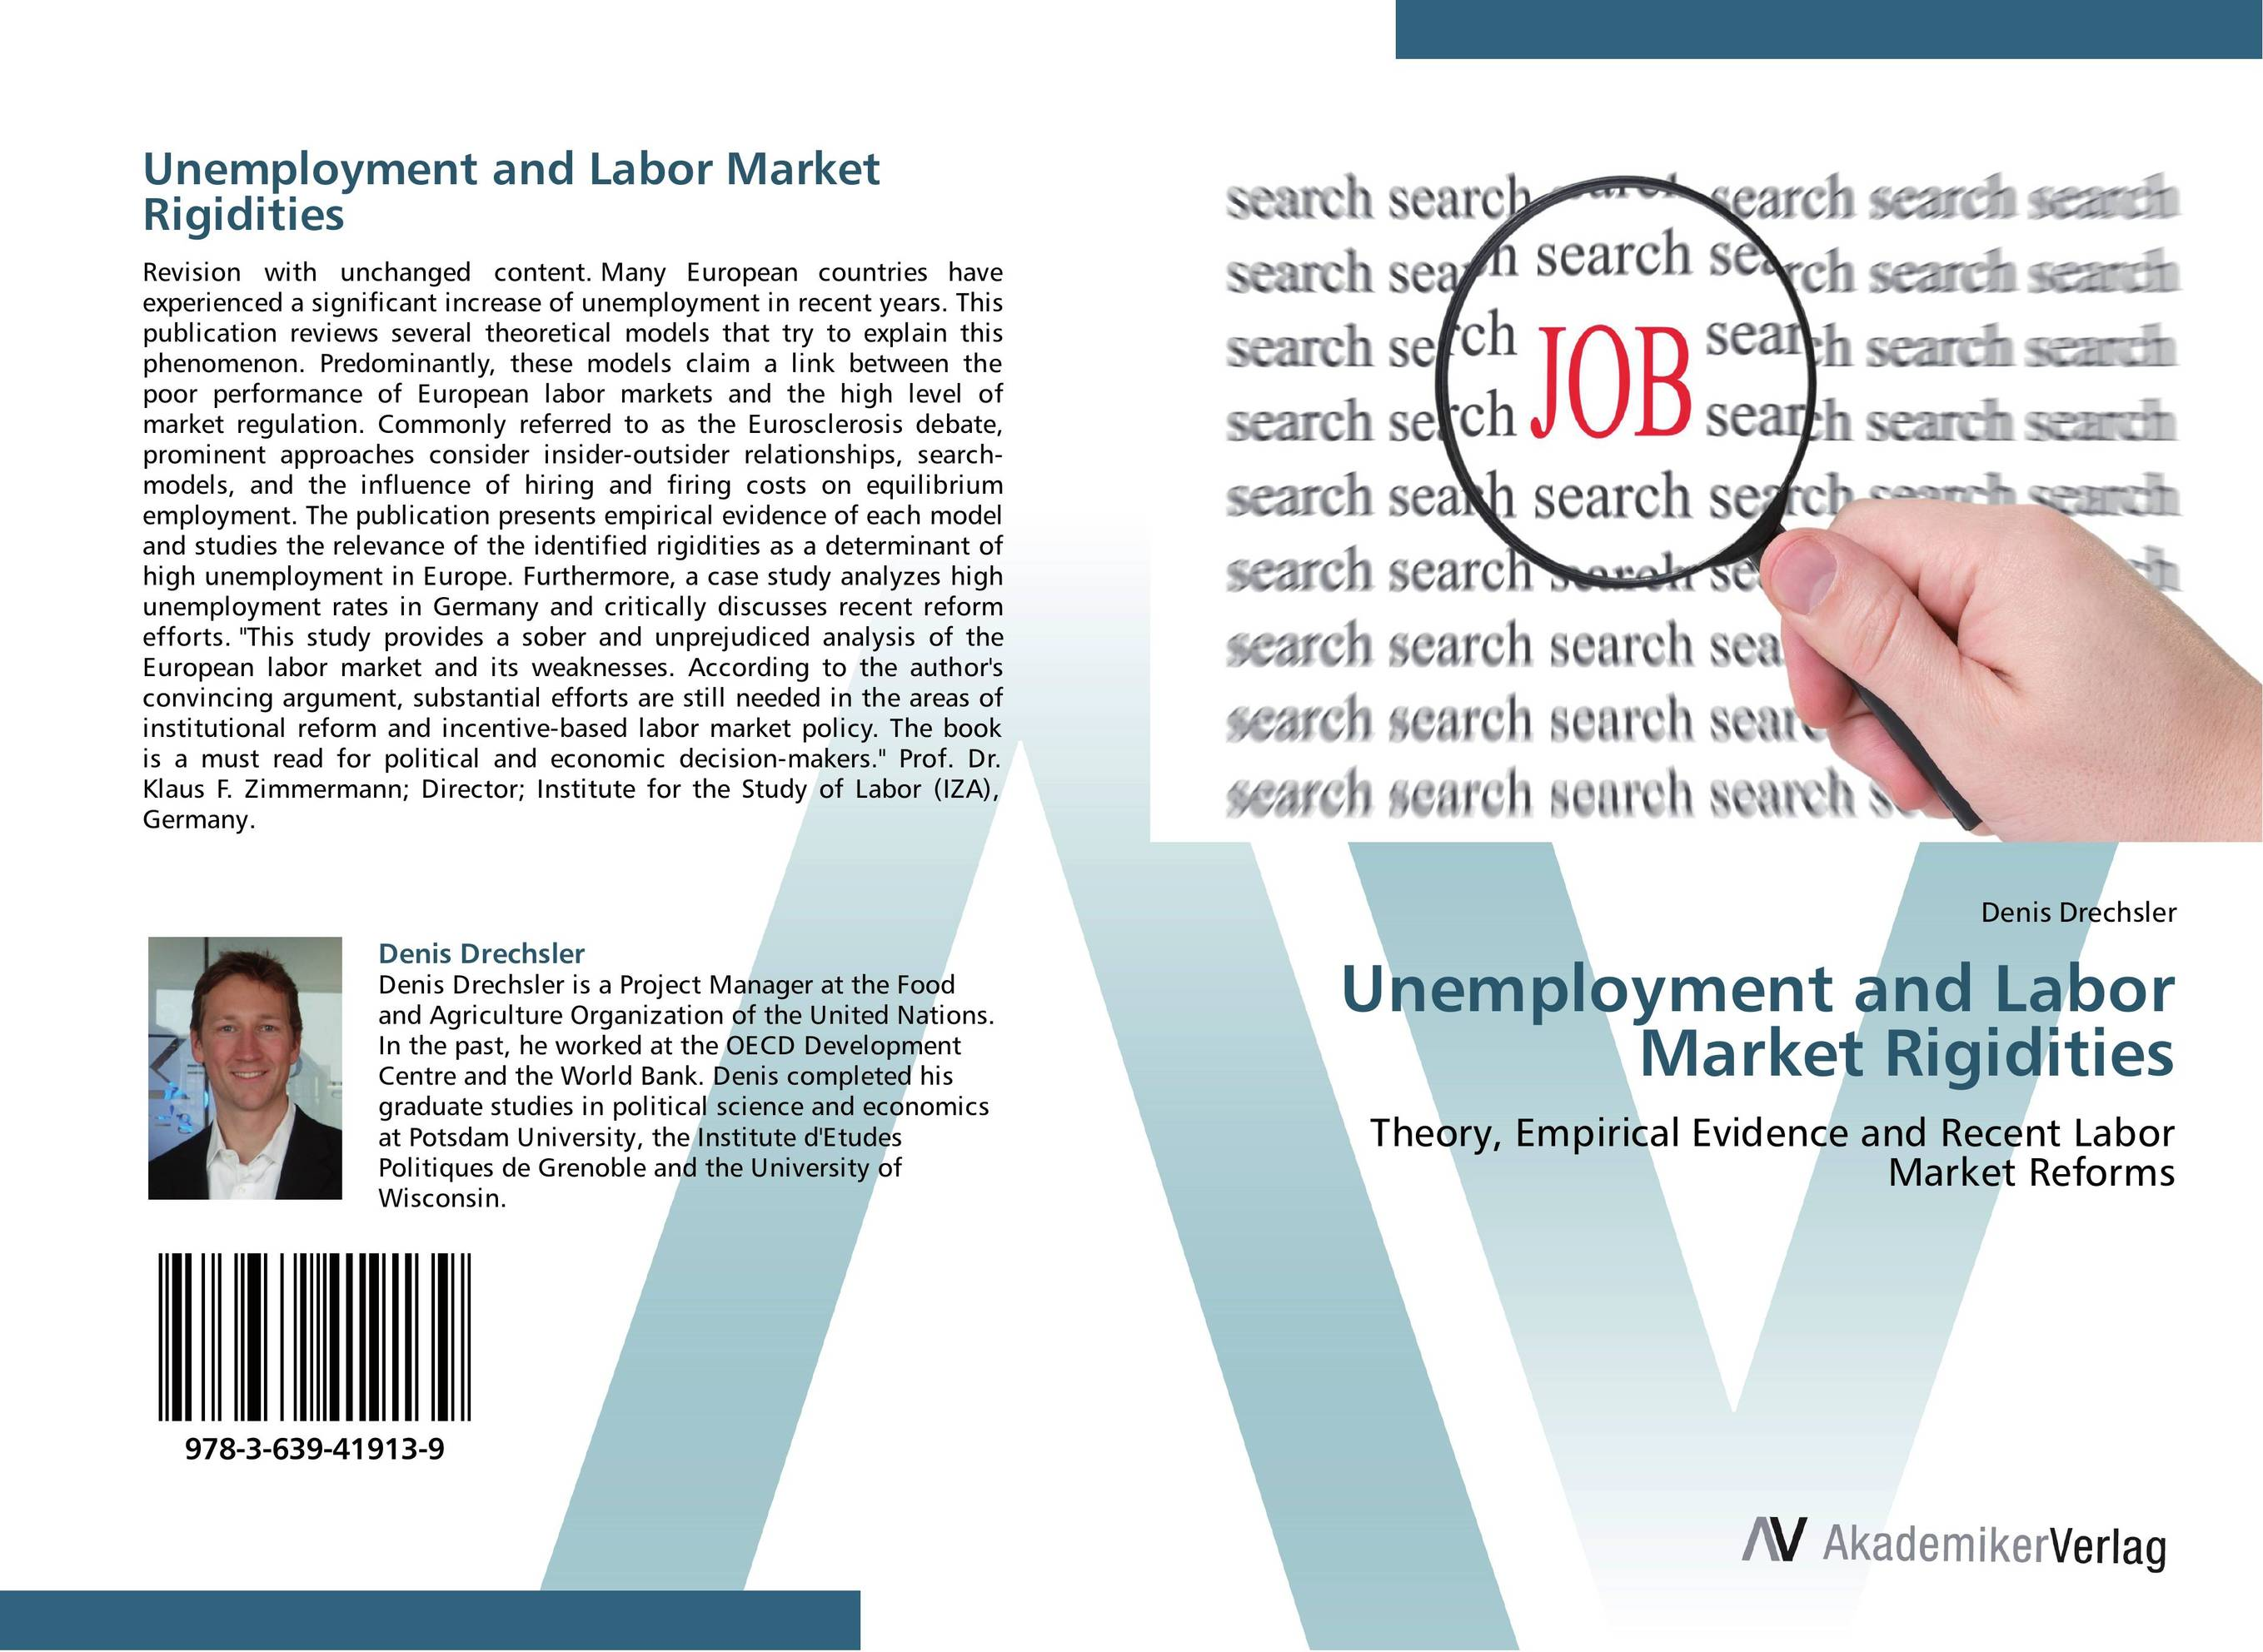 Unemployment and Labor Market Rigidities